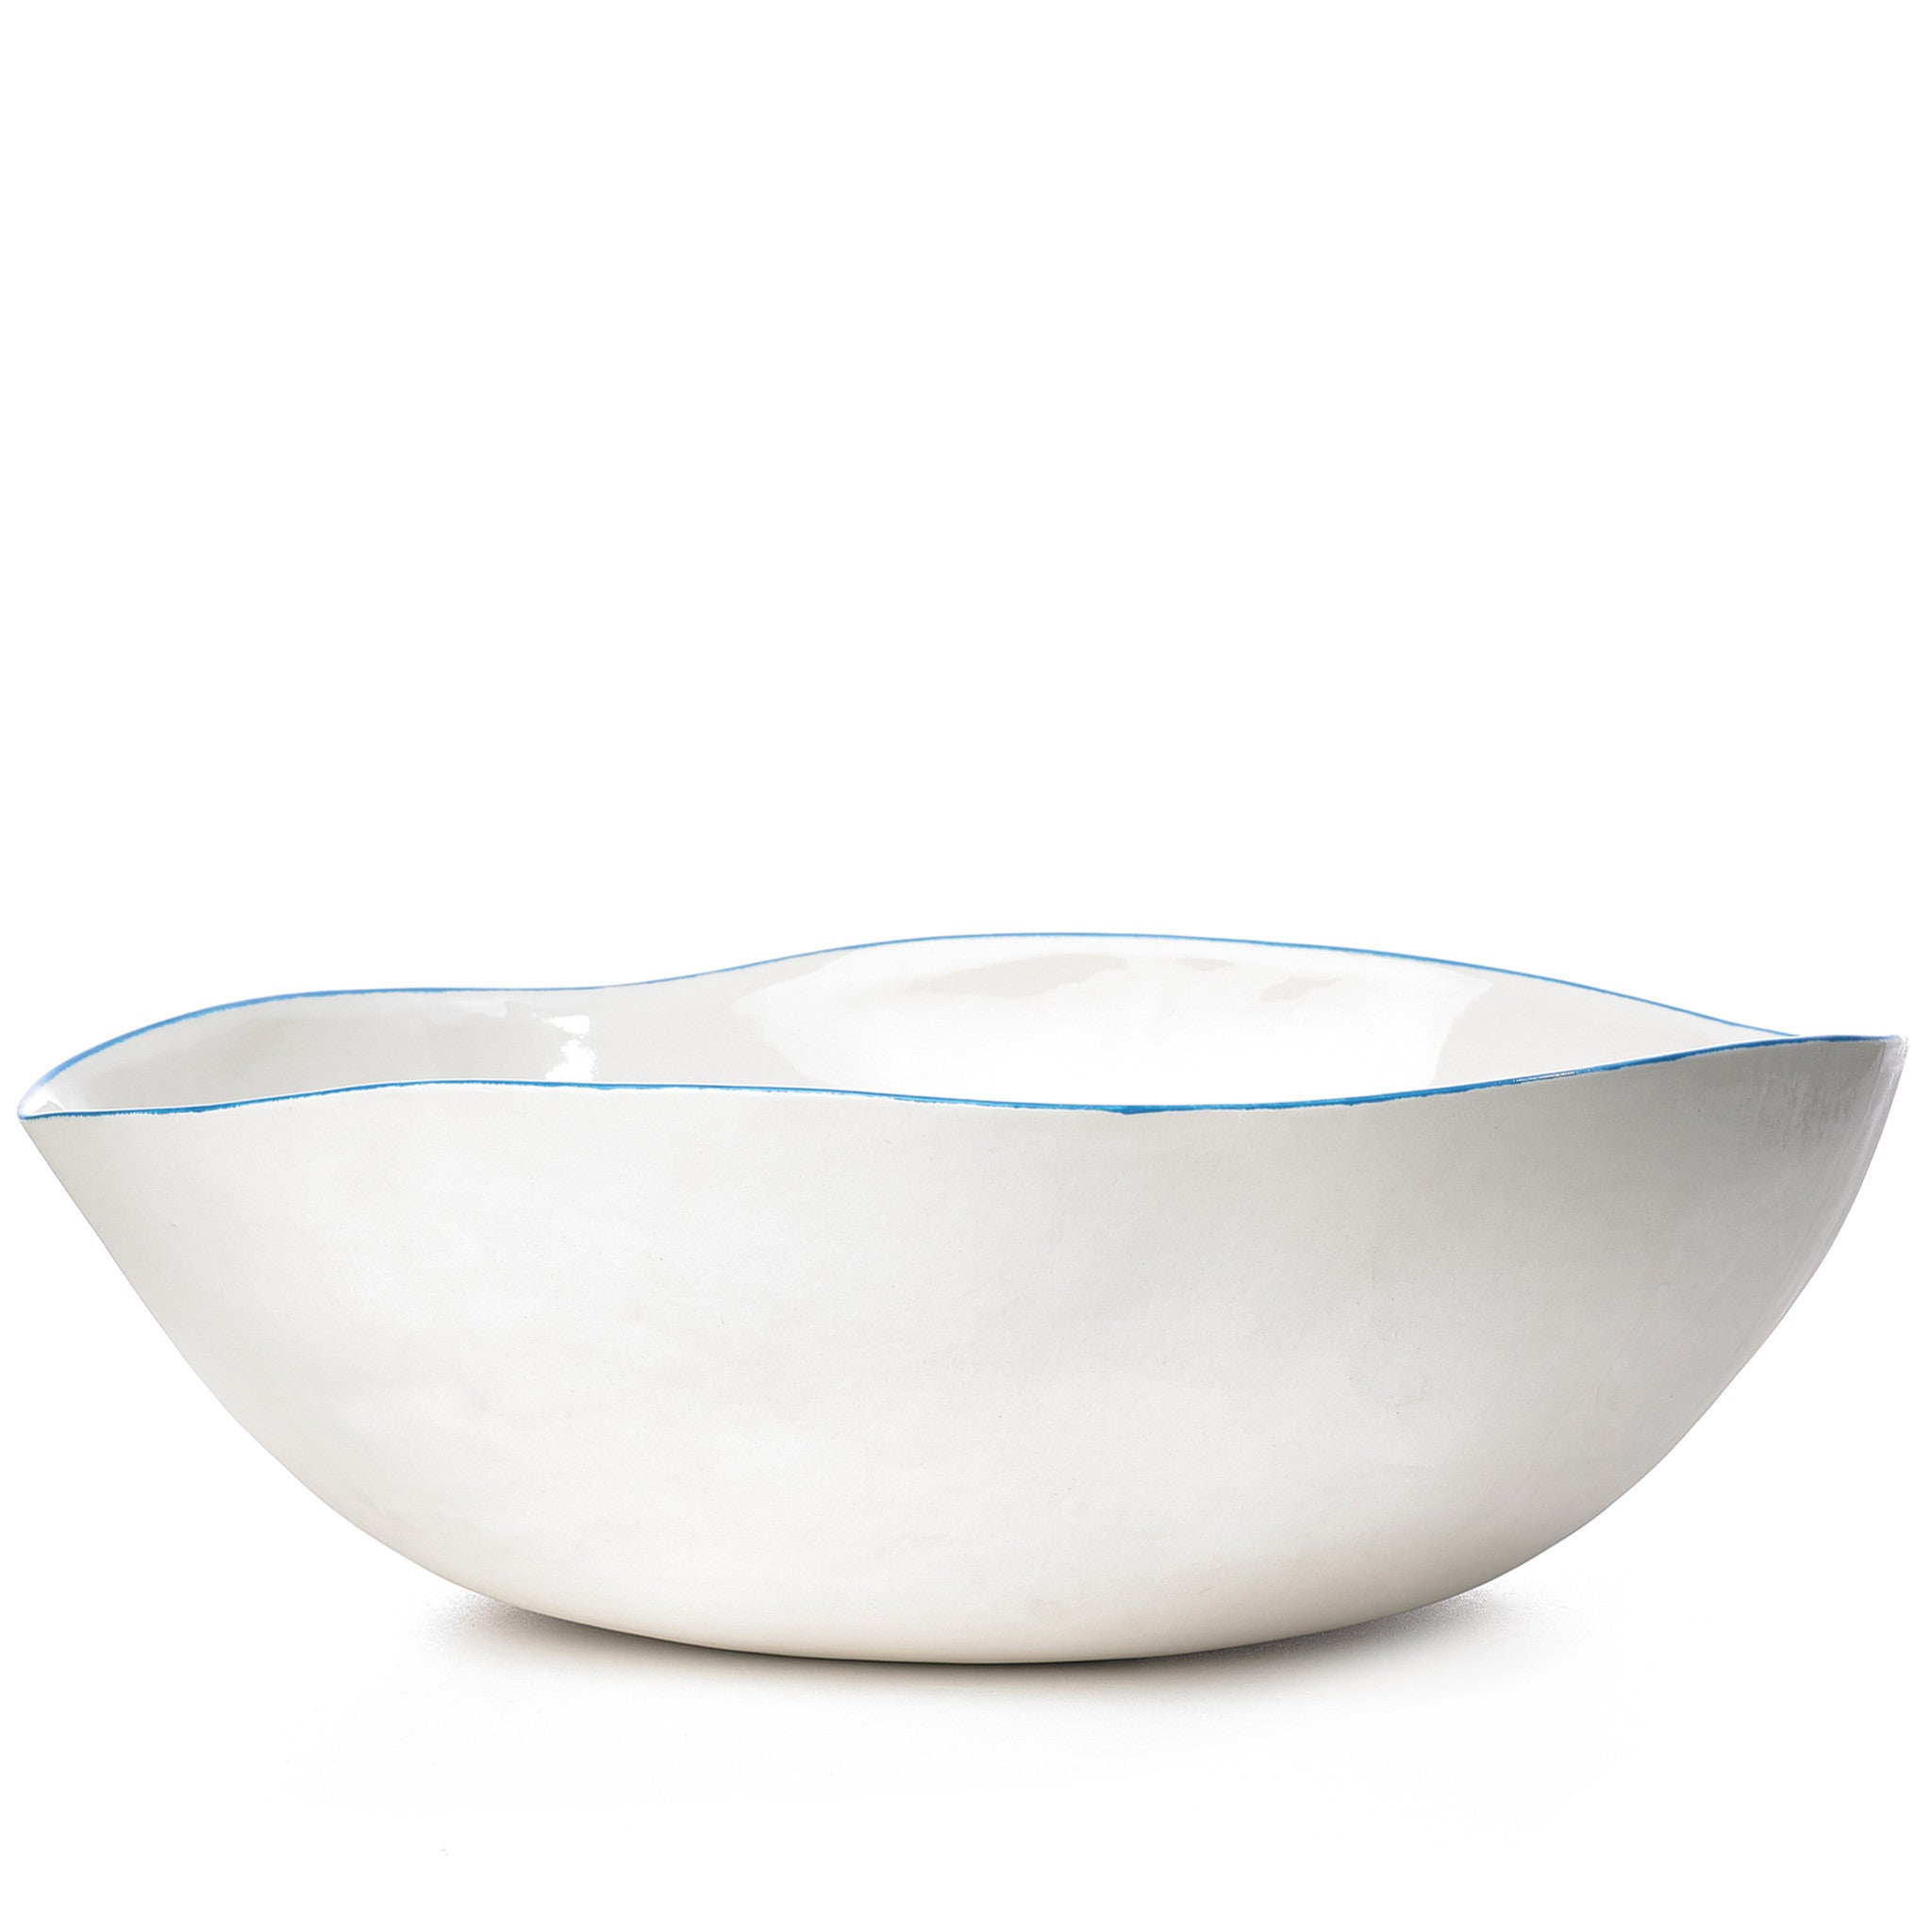 S&B Handmade 43cm Porcelain Extra Large Salad Bowl with Blue Rim